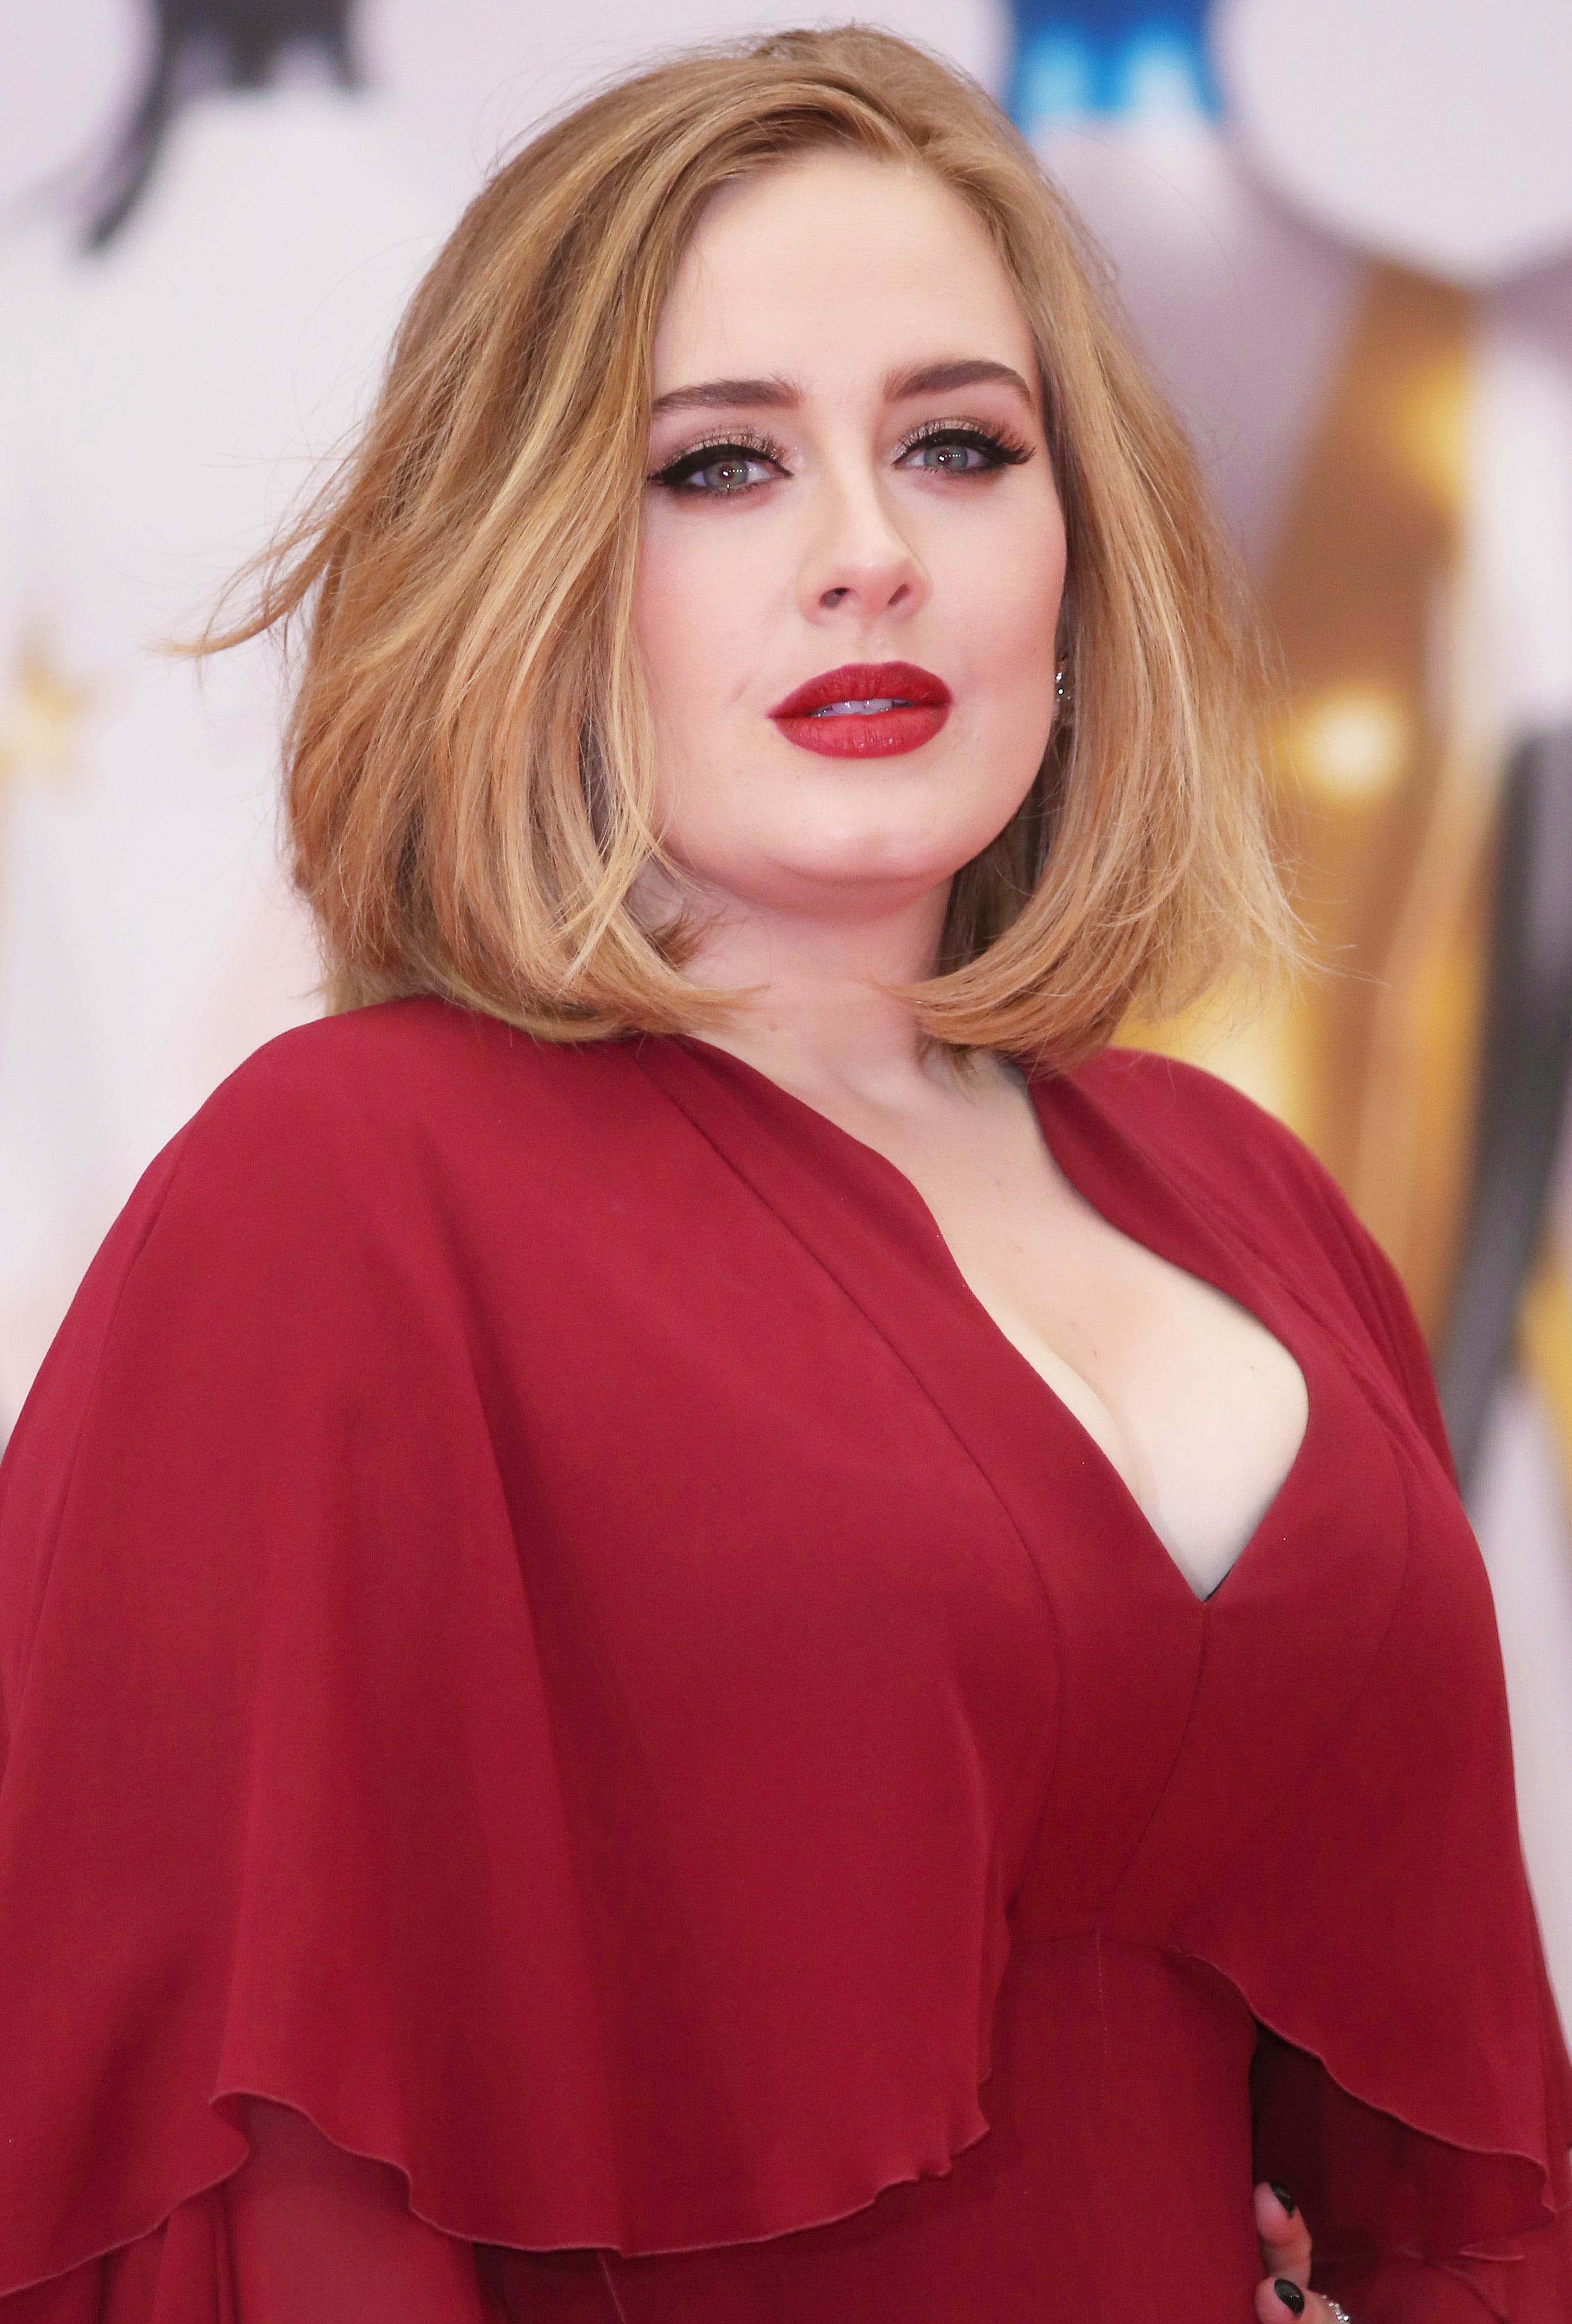 Hello, It's Adele Working On A New Album To Be Release In 2019 - Jetss